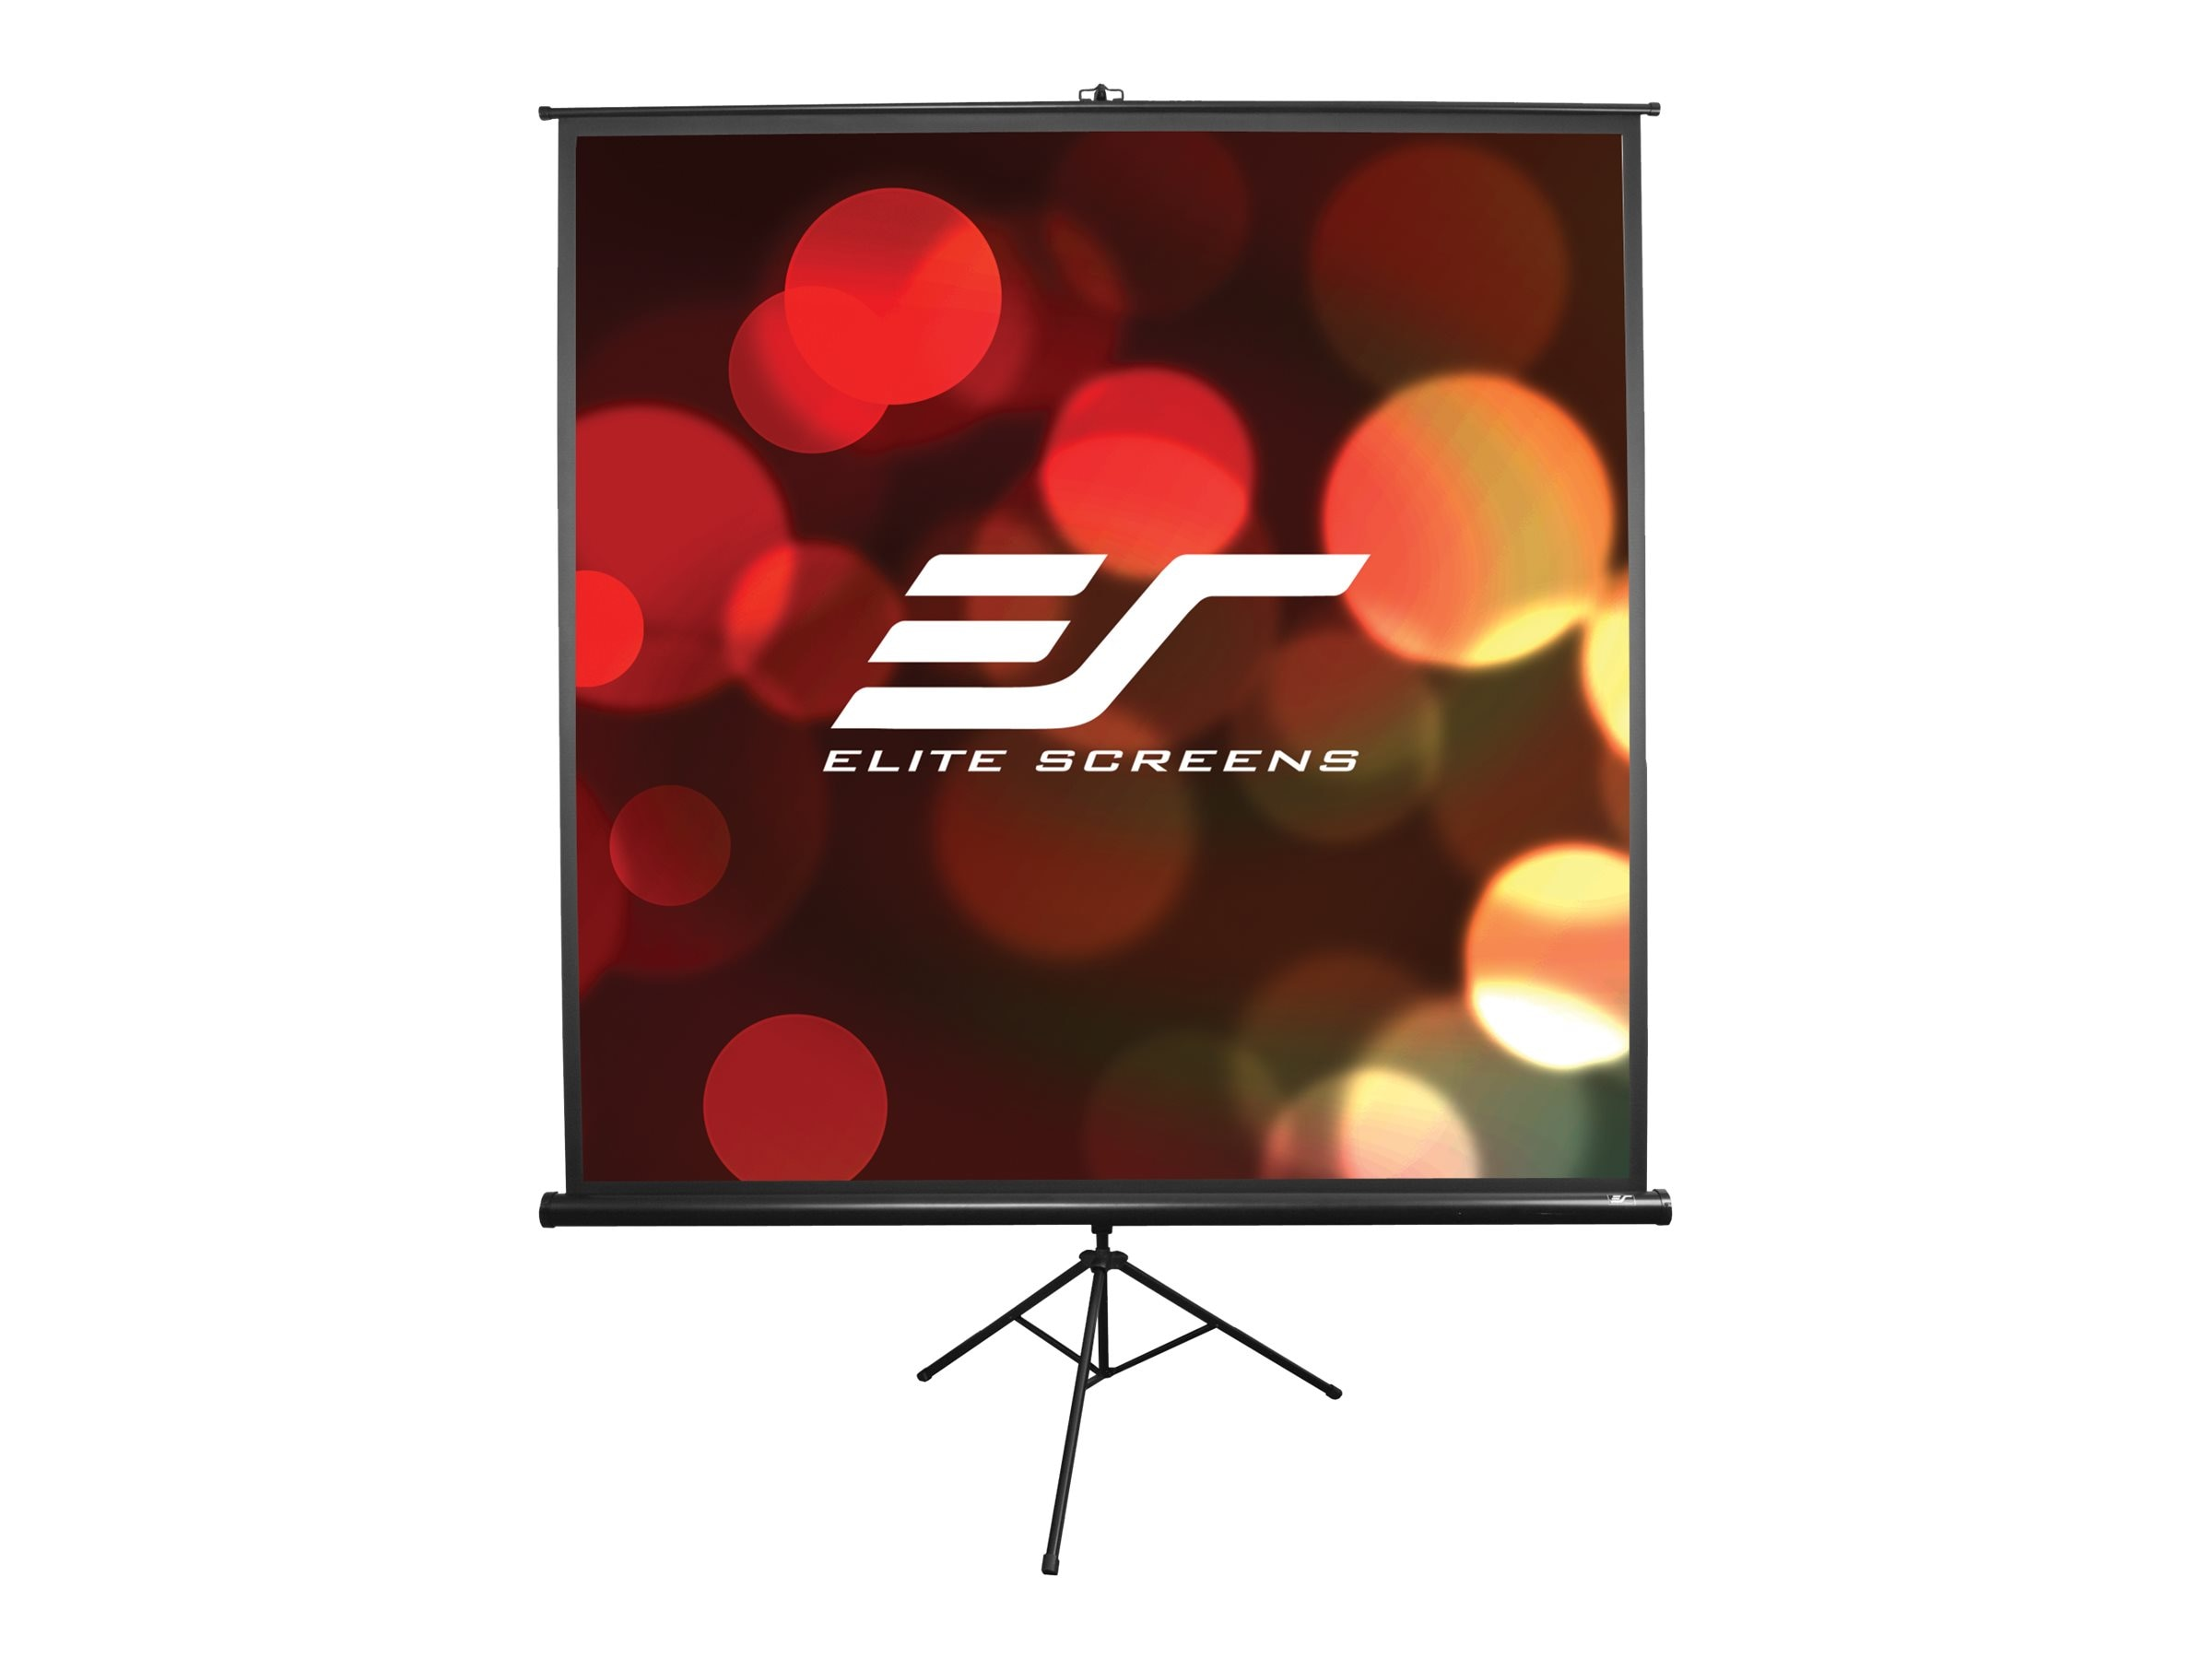 Elite Screens T85UWS1 Image 1